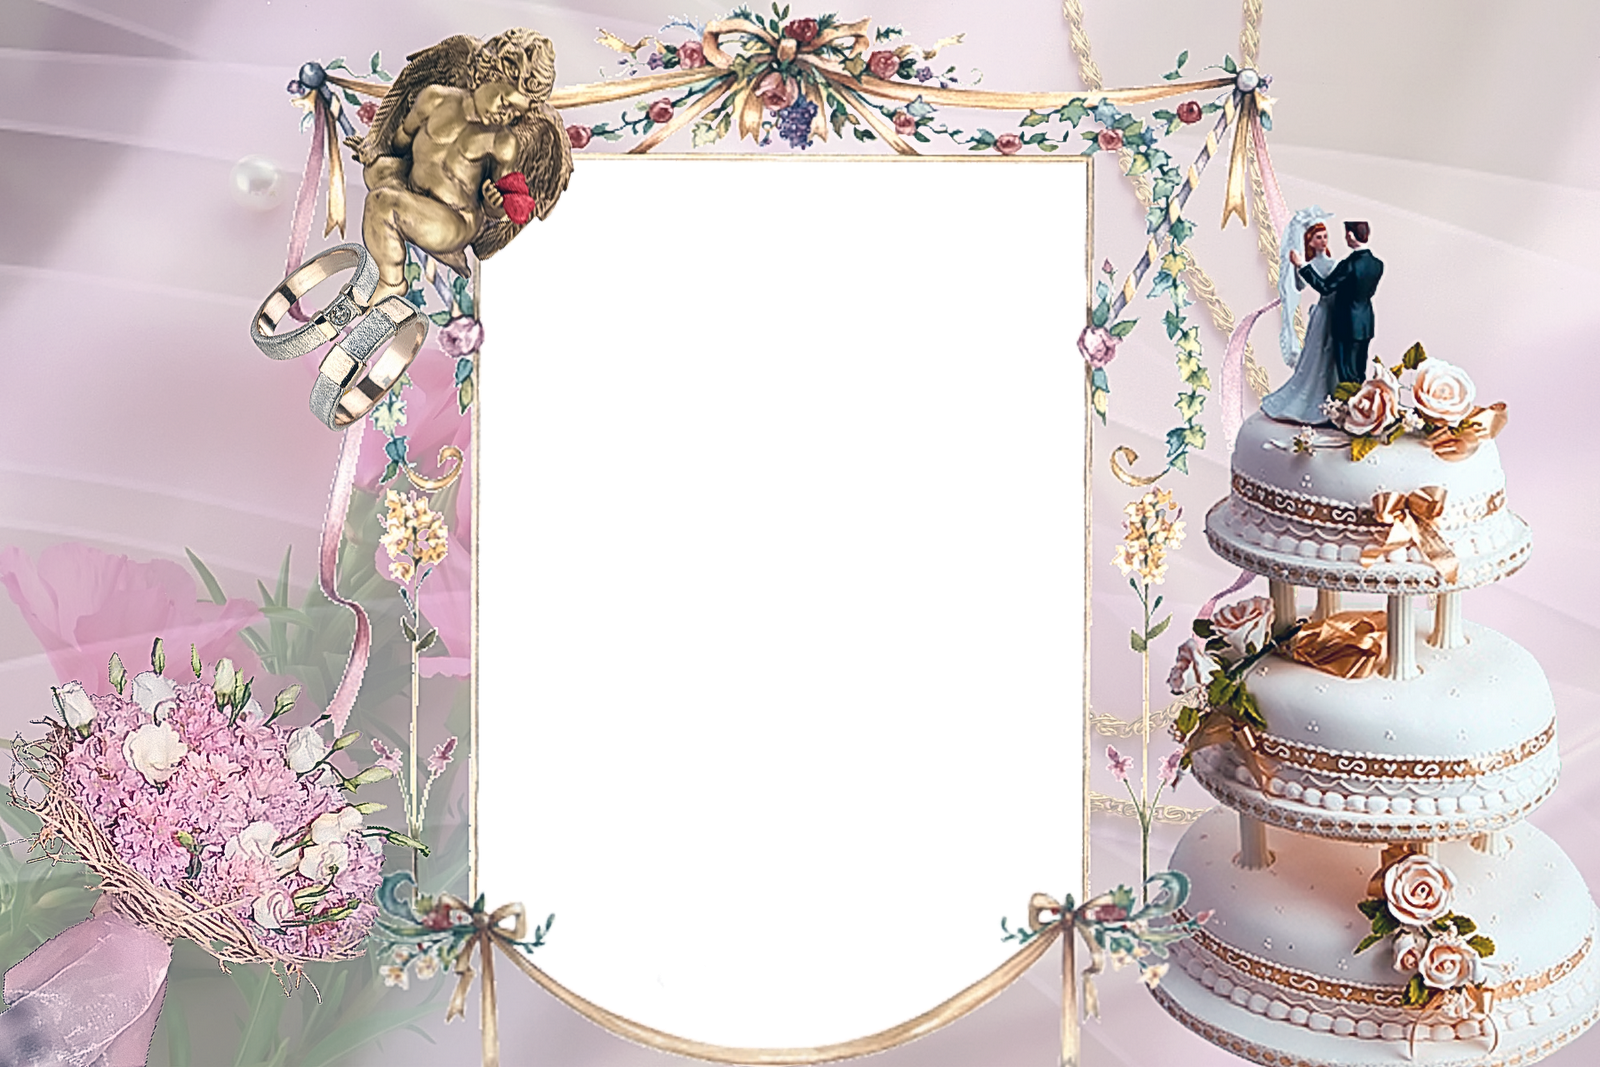 Wedding Frames Png Free Download Free Psd Wedding Frames For Wedding Photo Frames Psd Free Download 4526844 Vippng